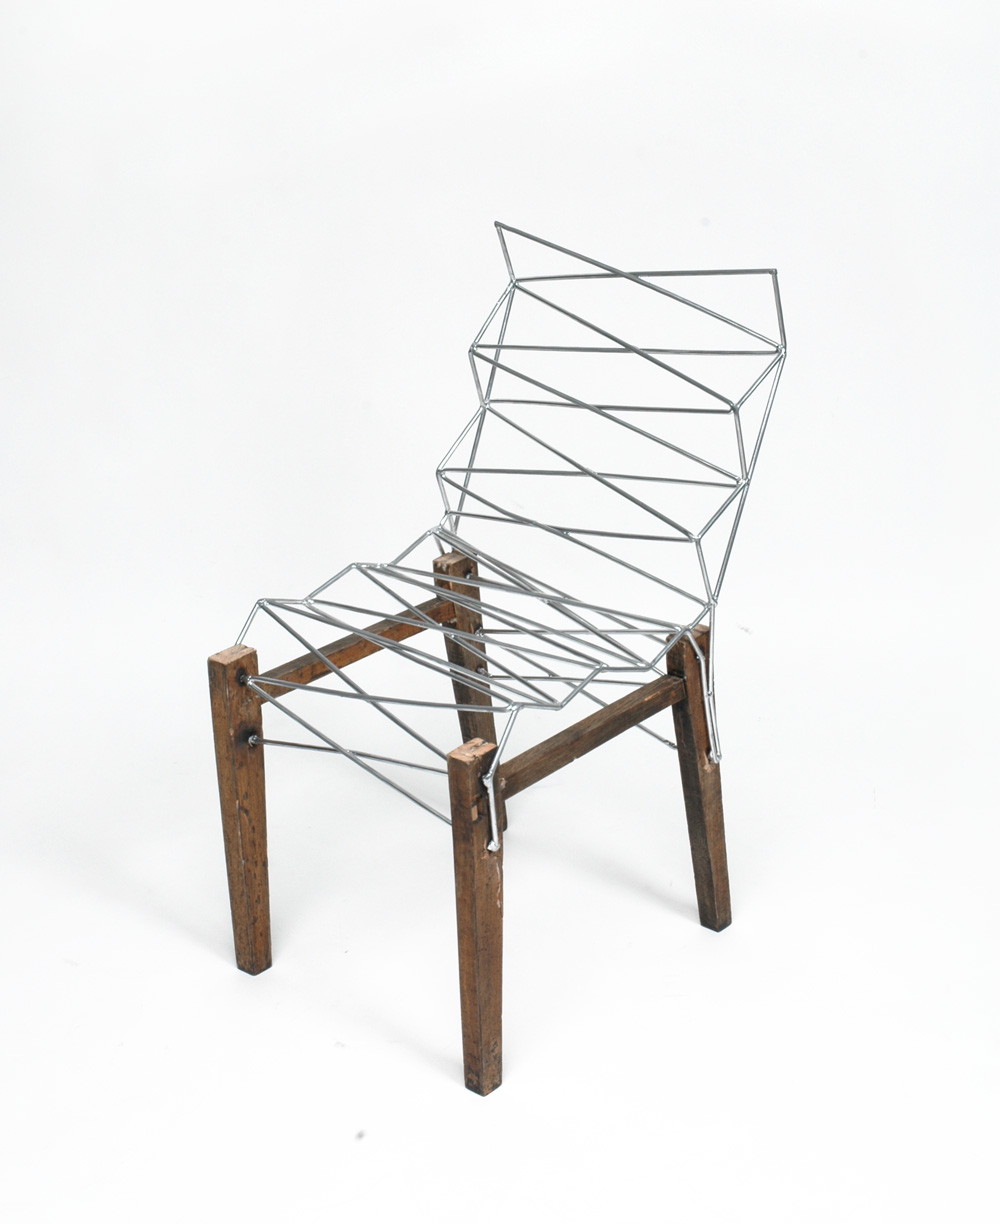 ... Into 2 Chairs With The Addition Of 6mm Steel Rod. A Kind Of Intensive  Repair, But Also A Way To Forge New Identity For An Object Made Anonymous  By The ...